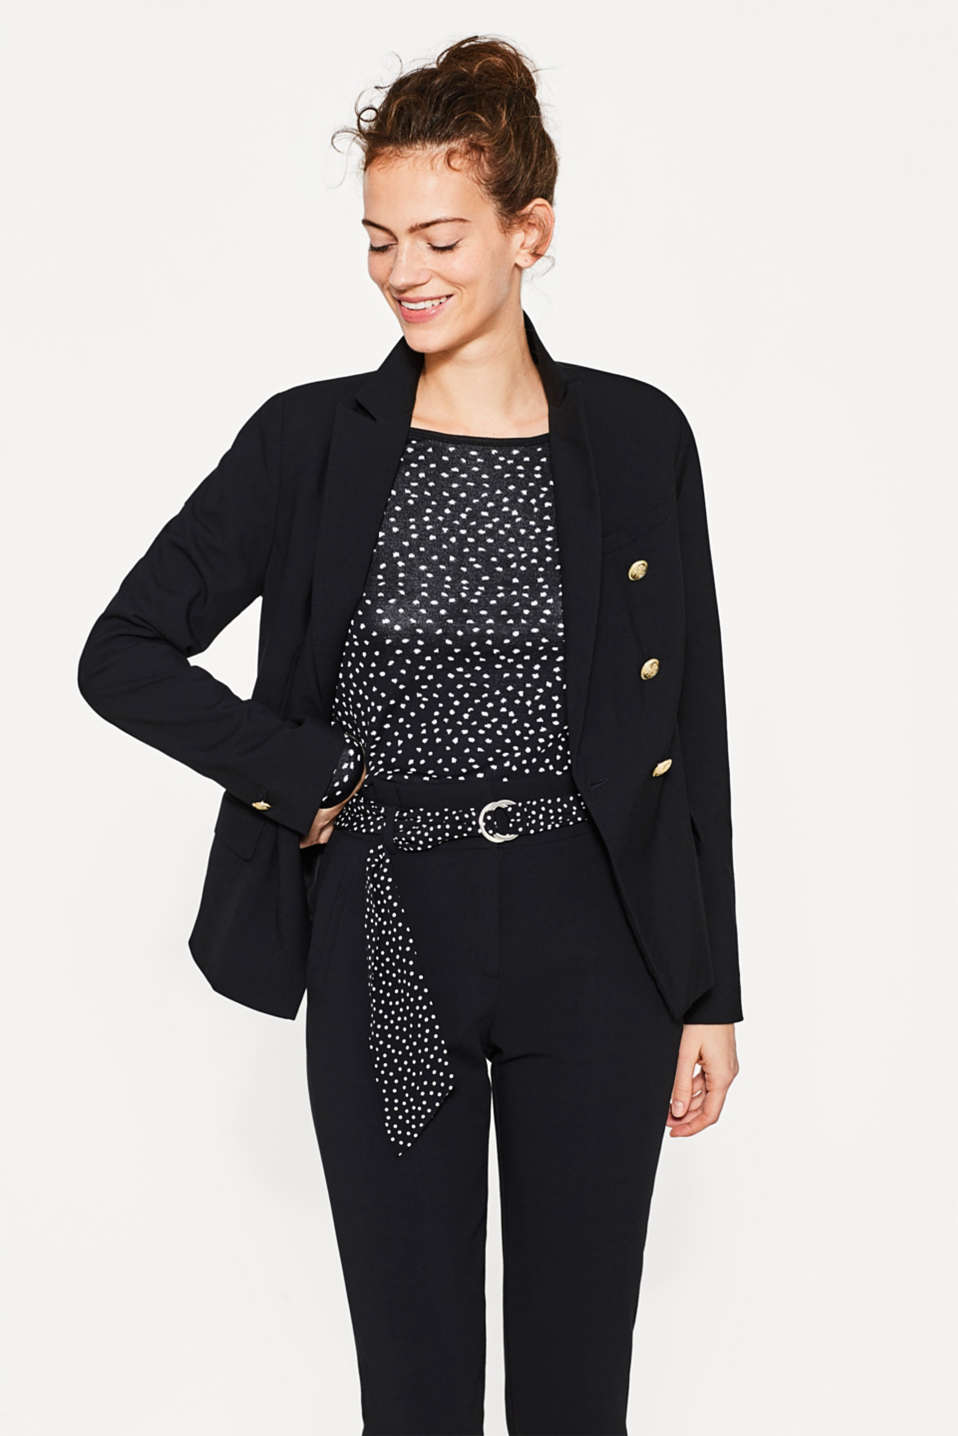 Jacquard jumper with a polka dot pattern